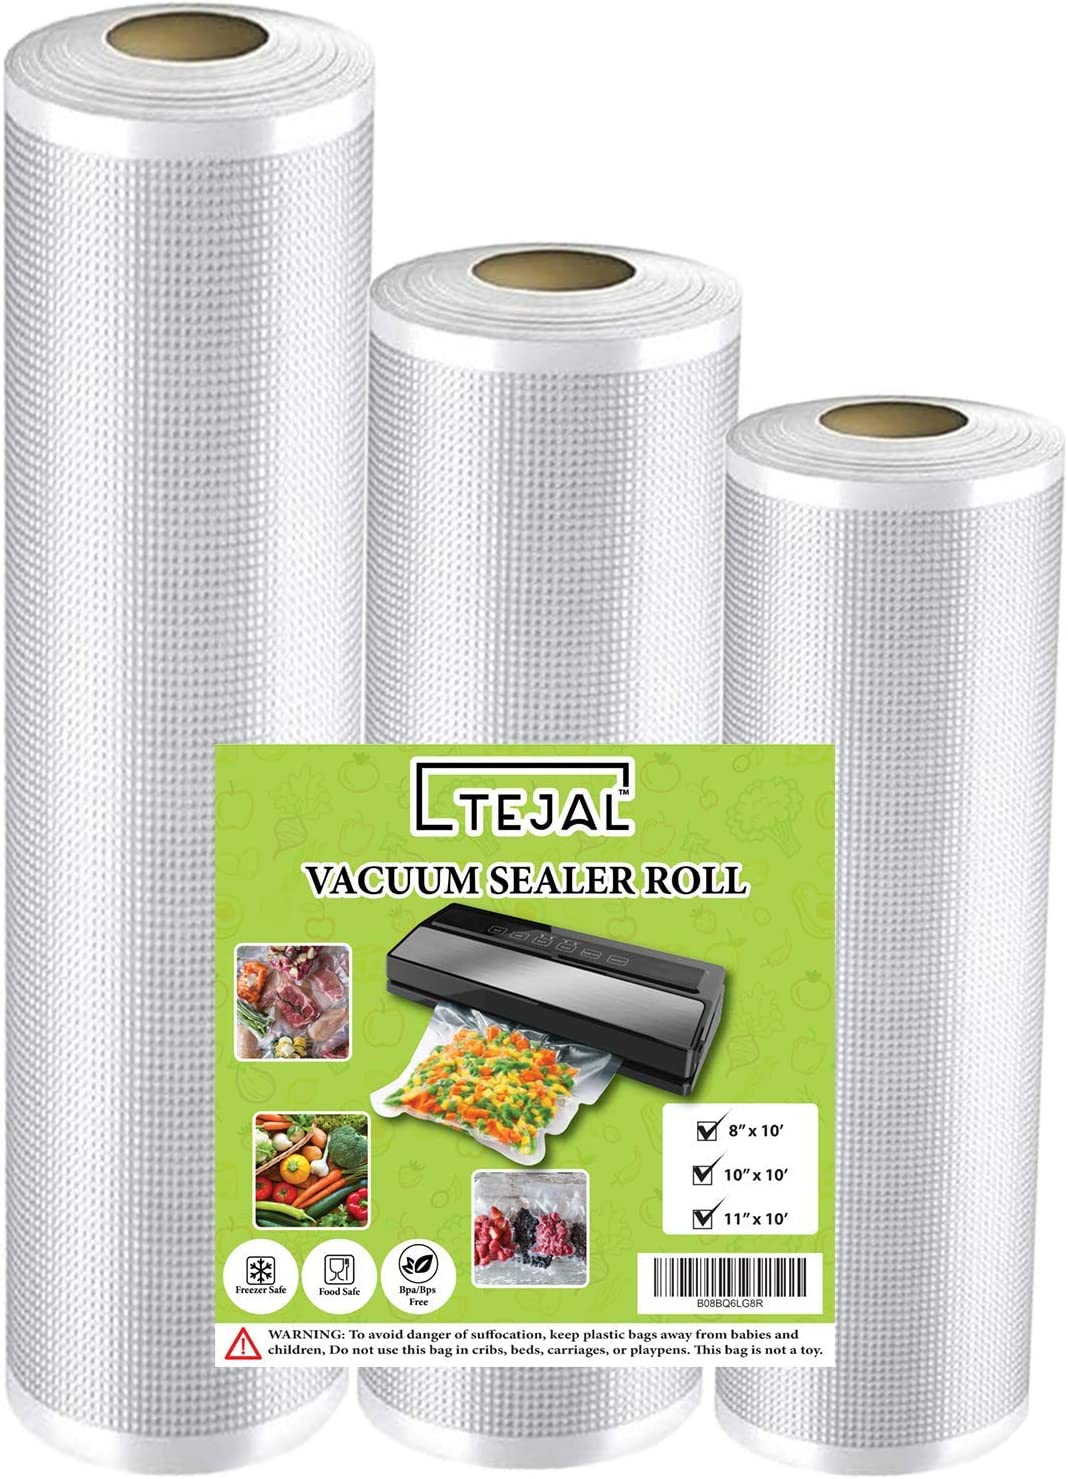 "Vacuum Sealer Bags for Food Saver Vacuum Sealer Bags Rolls 8"" x 10', 10"" x 10', 11"" x 10' 3 Pack Vacuum Seal Bags for Food Fit TEJAL Vacuum Sealer Sous Vide Bags Food Storage Bag Roll Vac Storage"